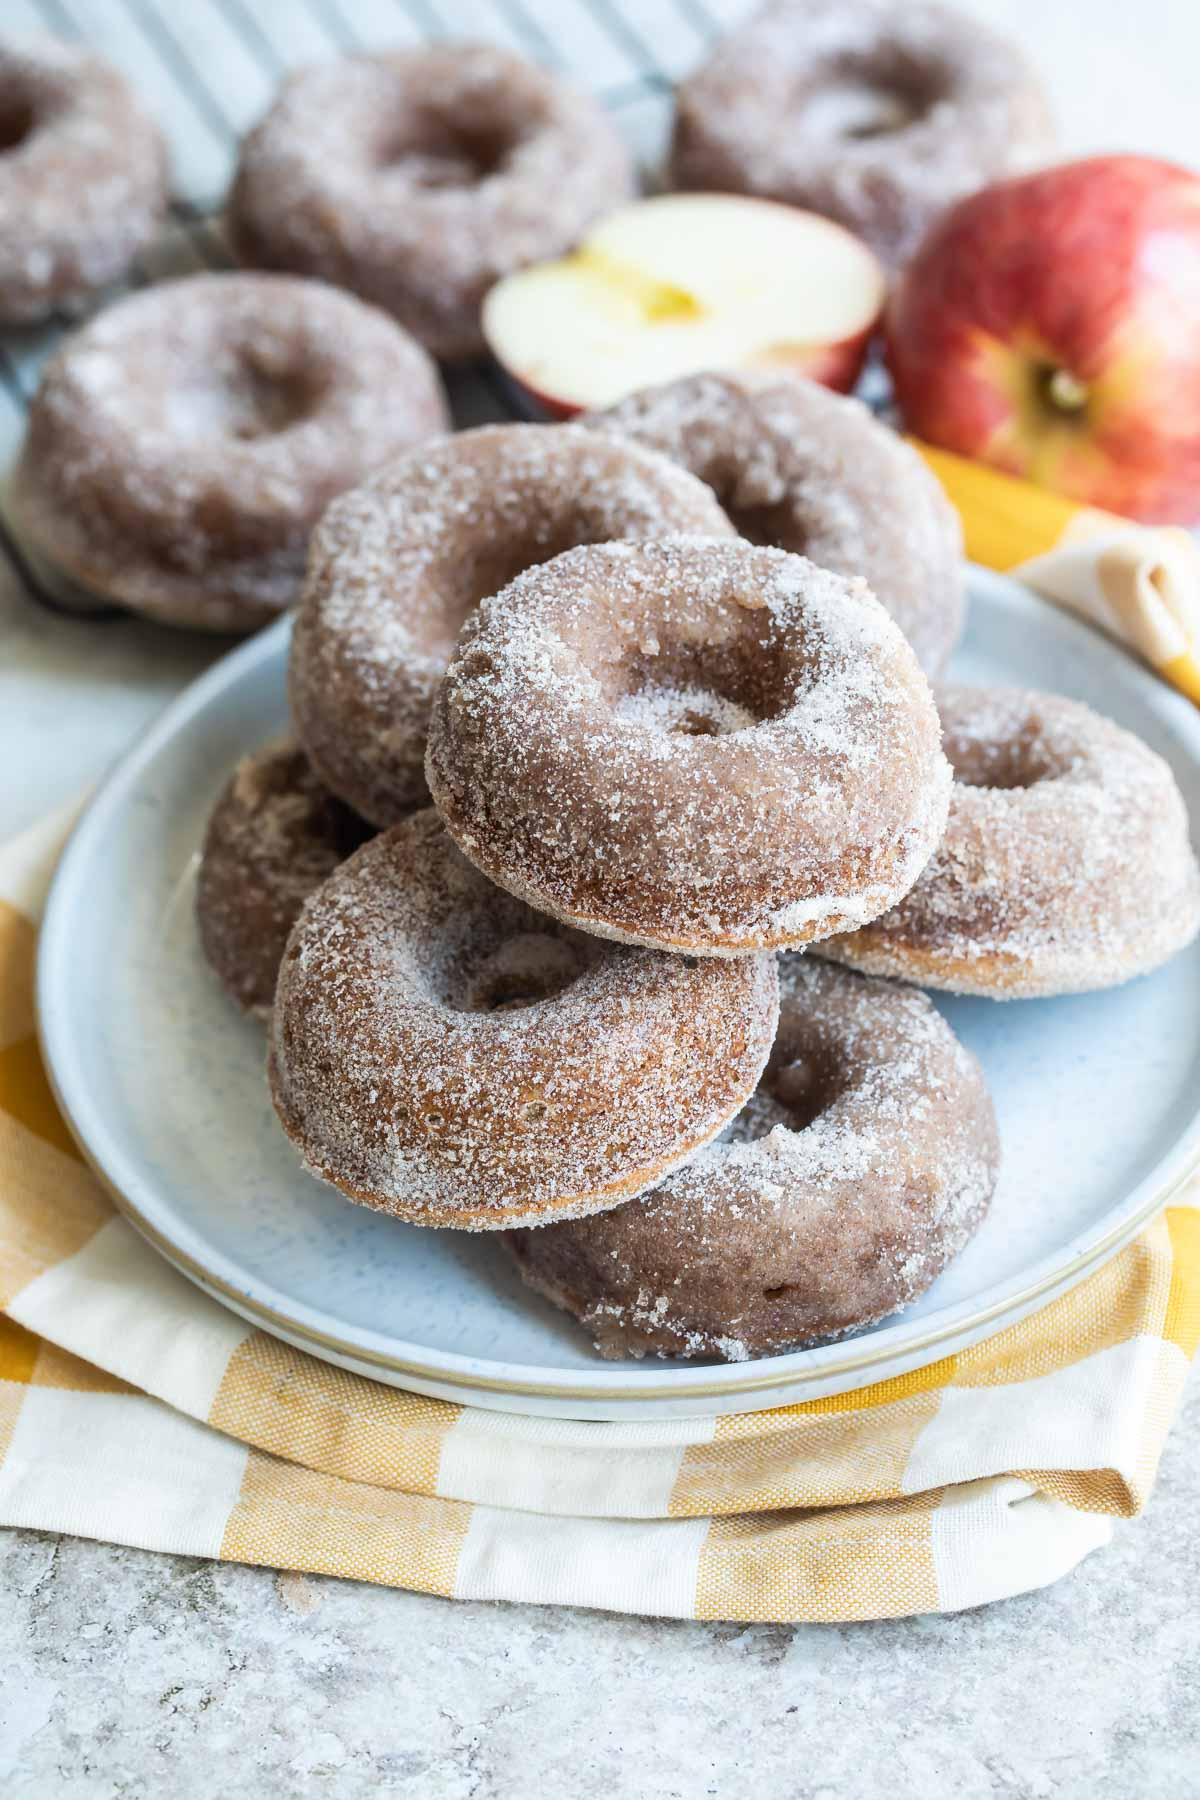 Seven apple cider donuts on a gray round plate.